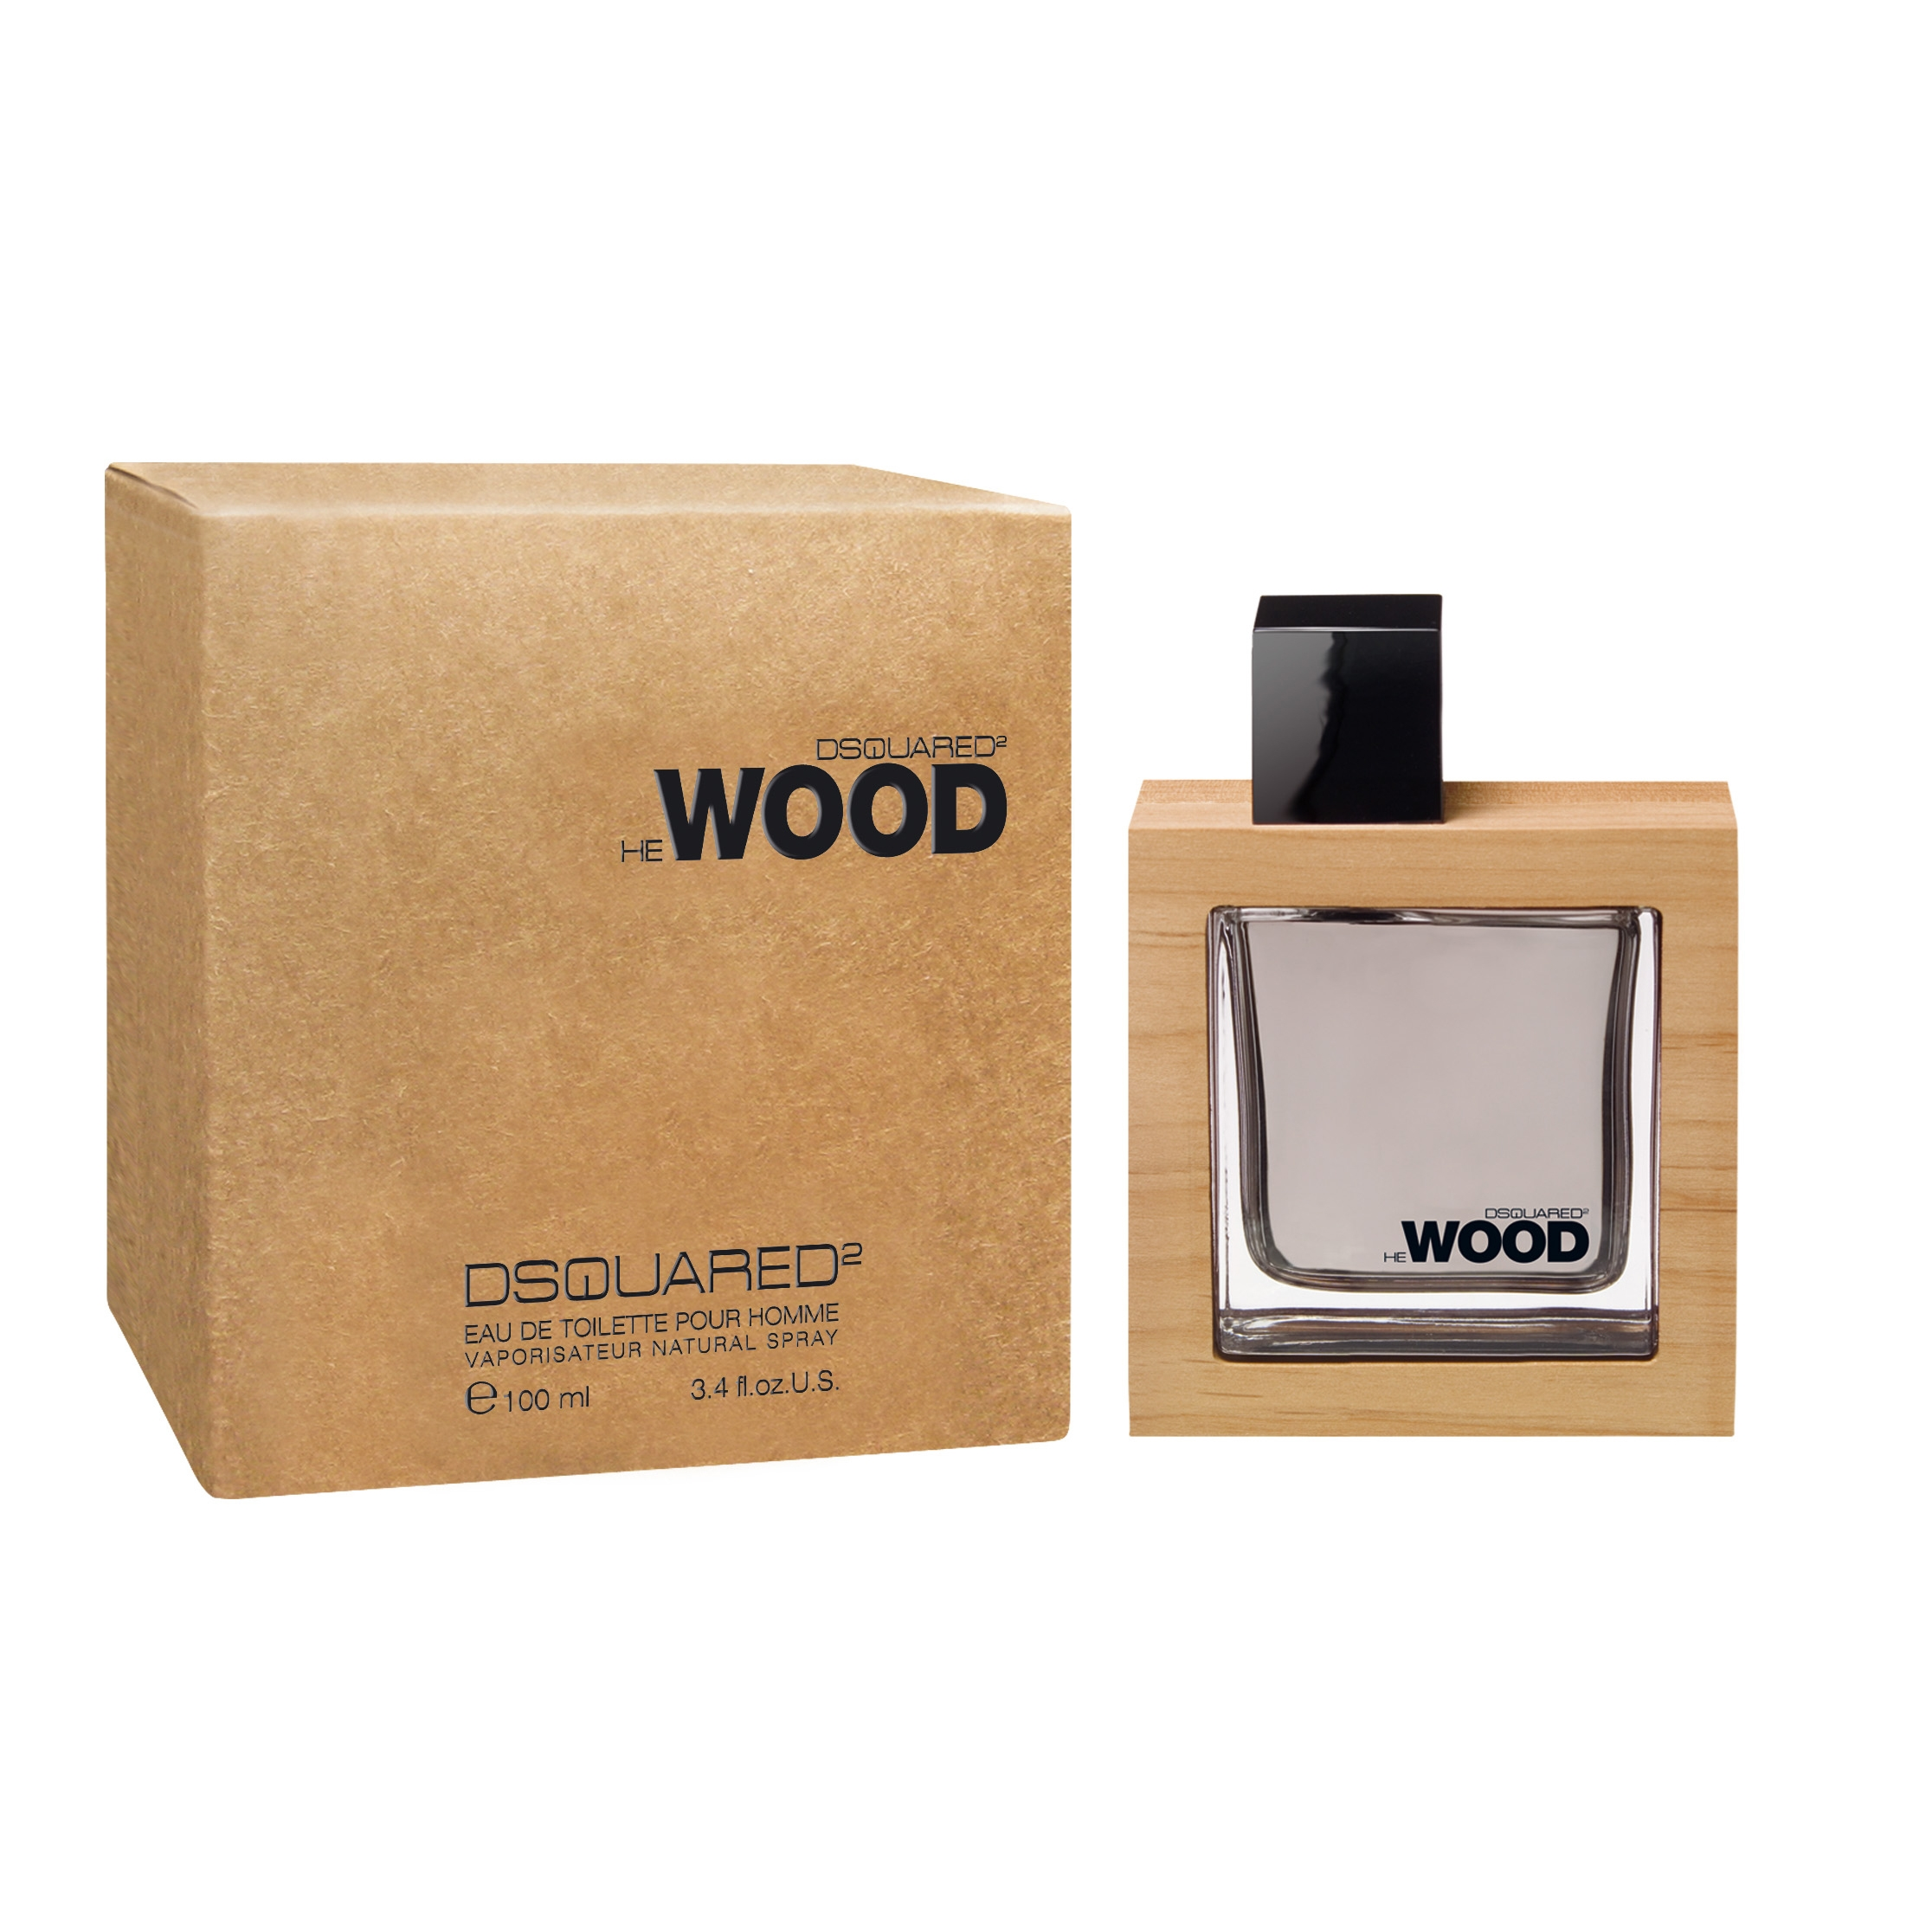 Dsquared2 He Wood 100 ml Eau de toilette edt profumo uomo 100 ml